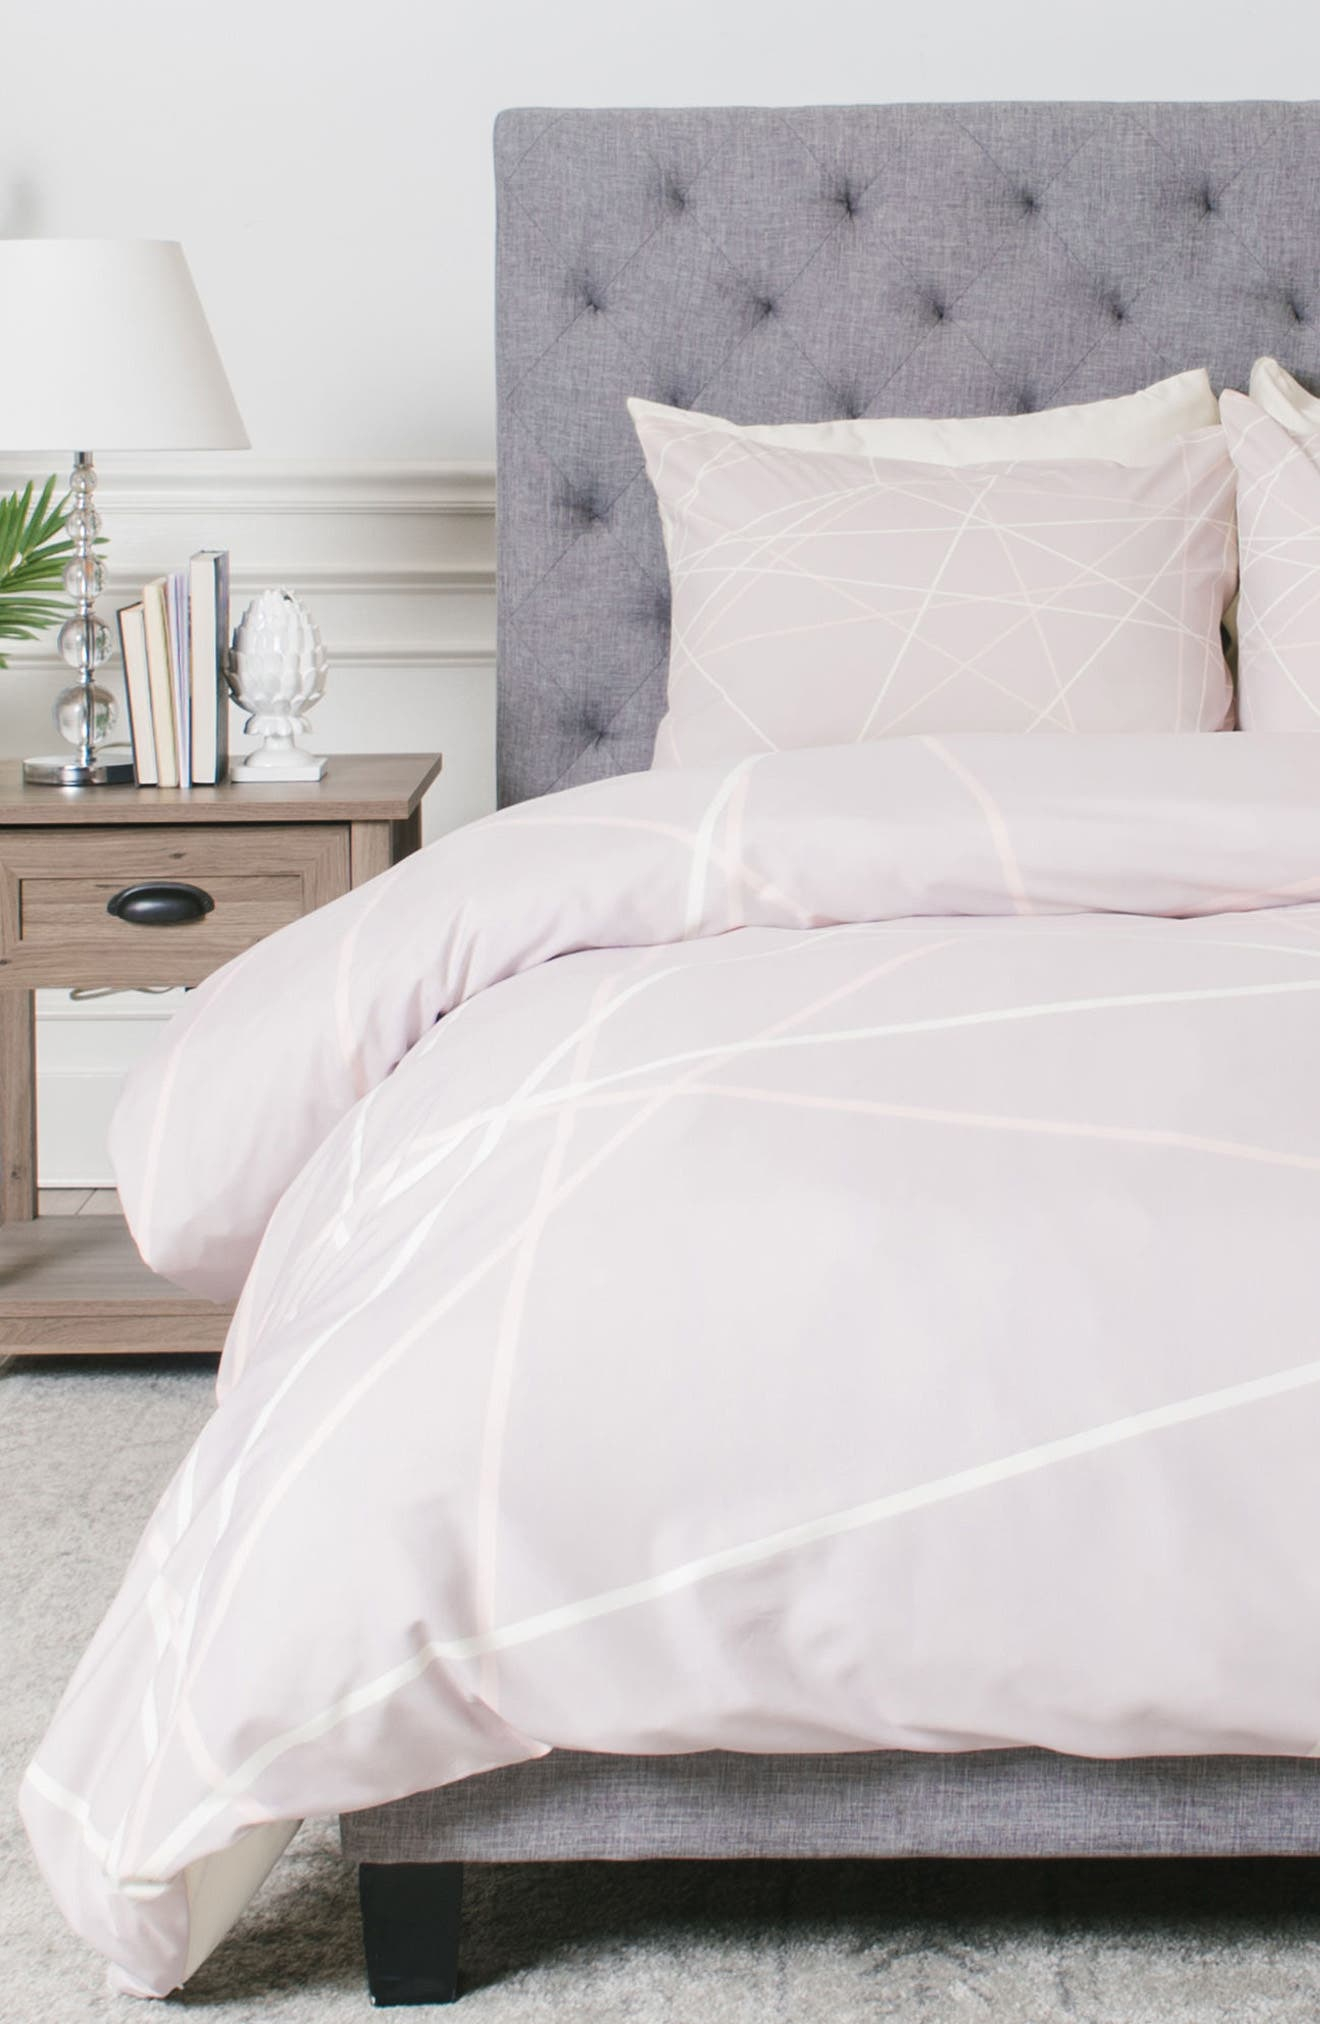 Alternate Image 1 Selected - Deny Designs Pastel Lines Duvet Cover & Sham Set